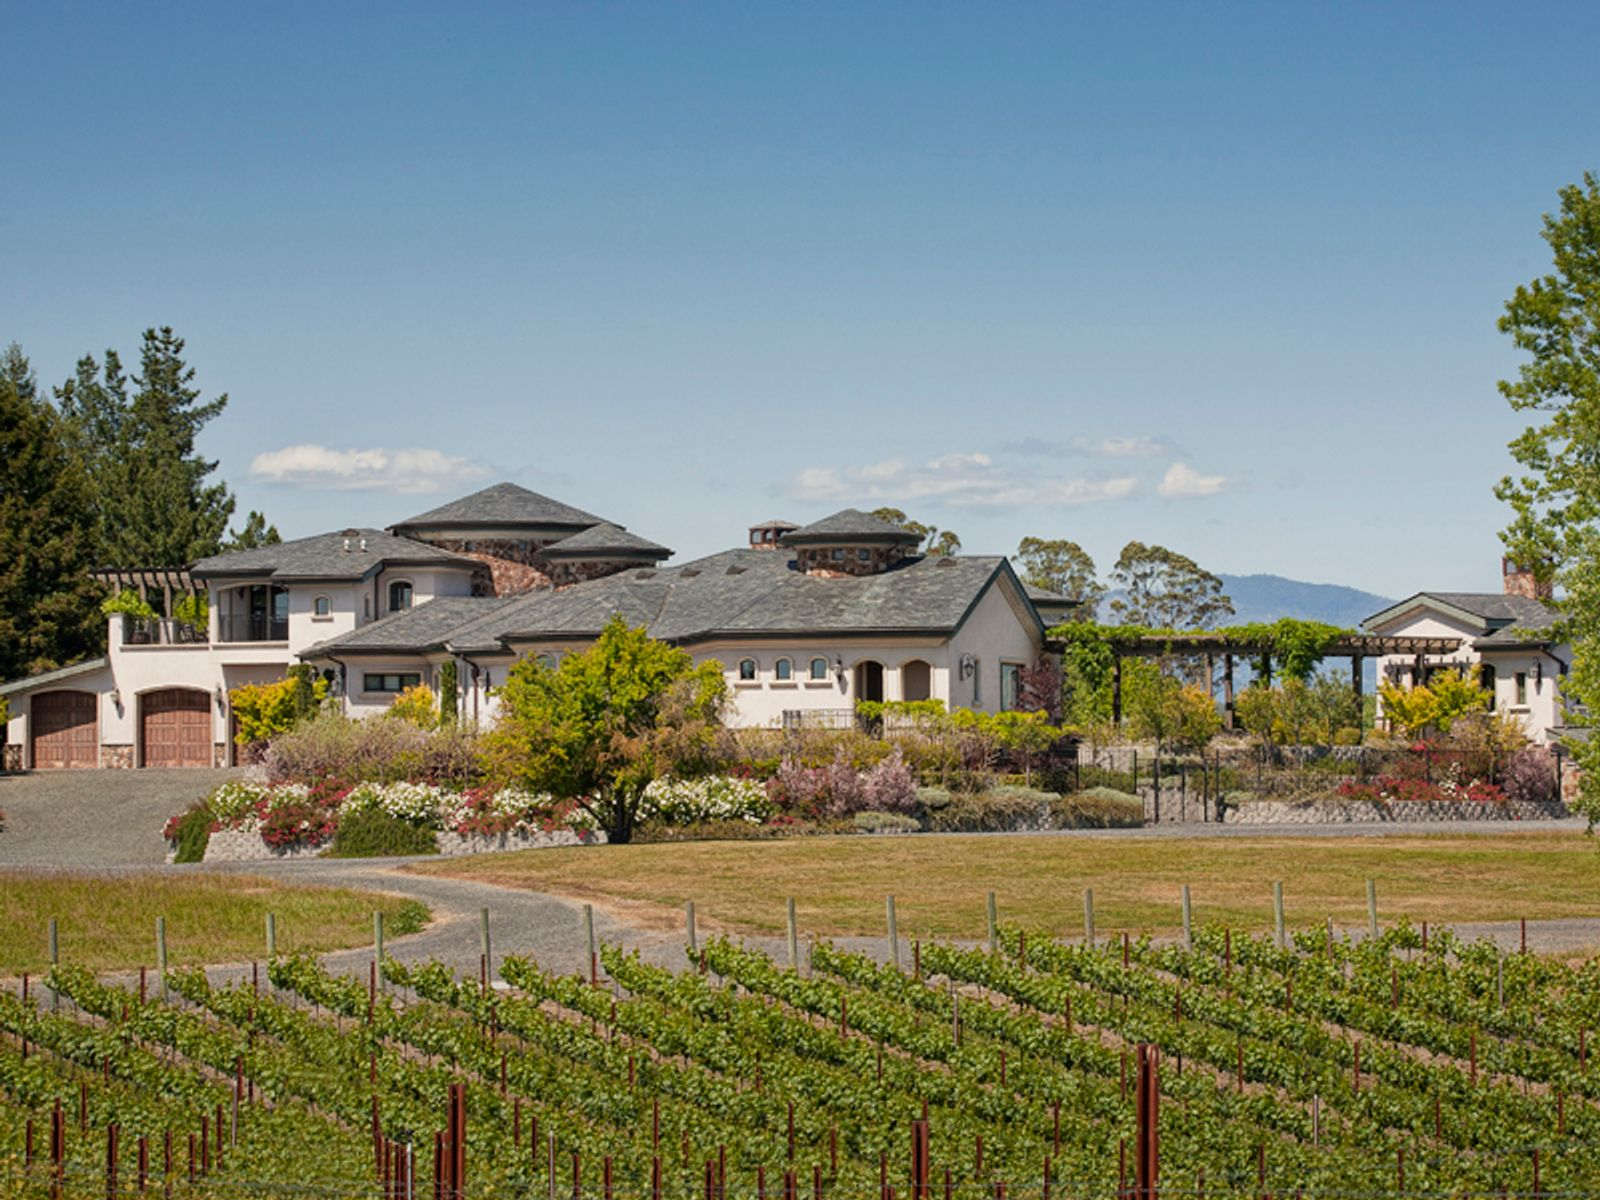 Spectacular Equestrian Vineyard Estate, Windsor CA Single Family Home - Sonoma - Napa Real Estate